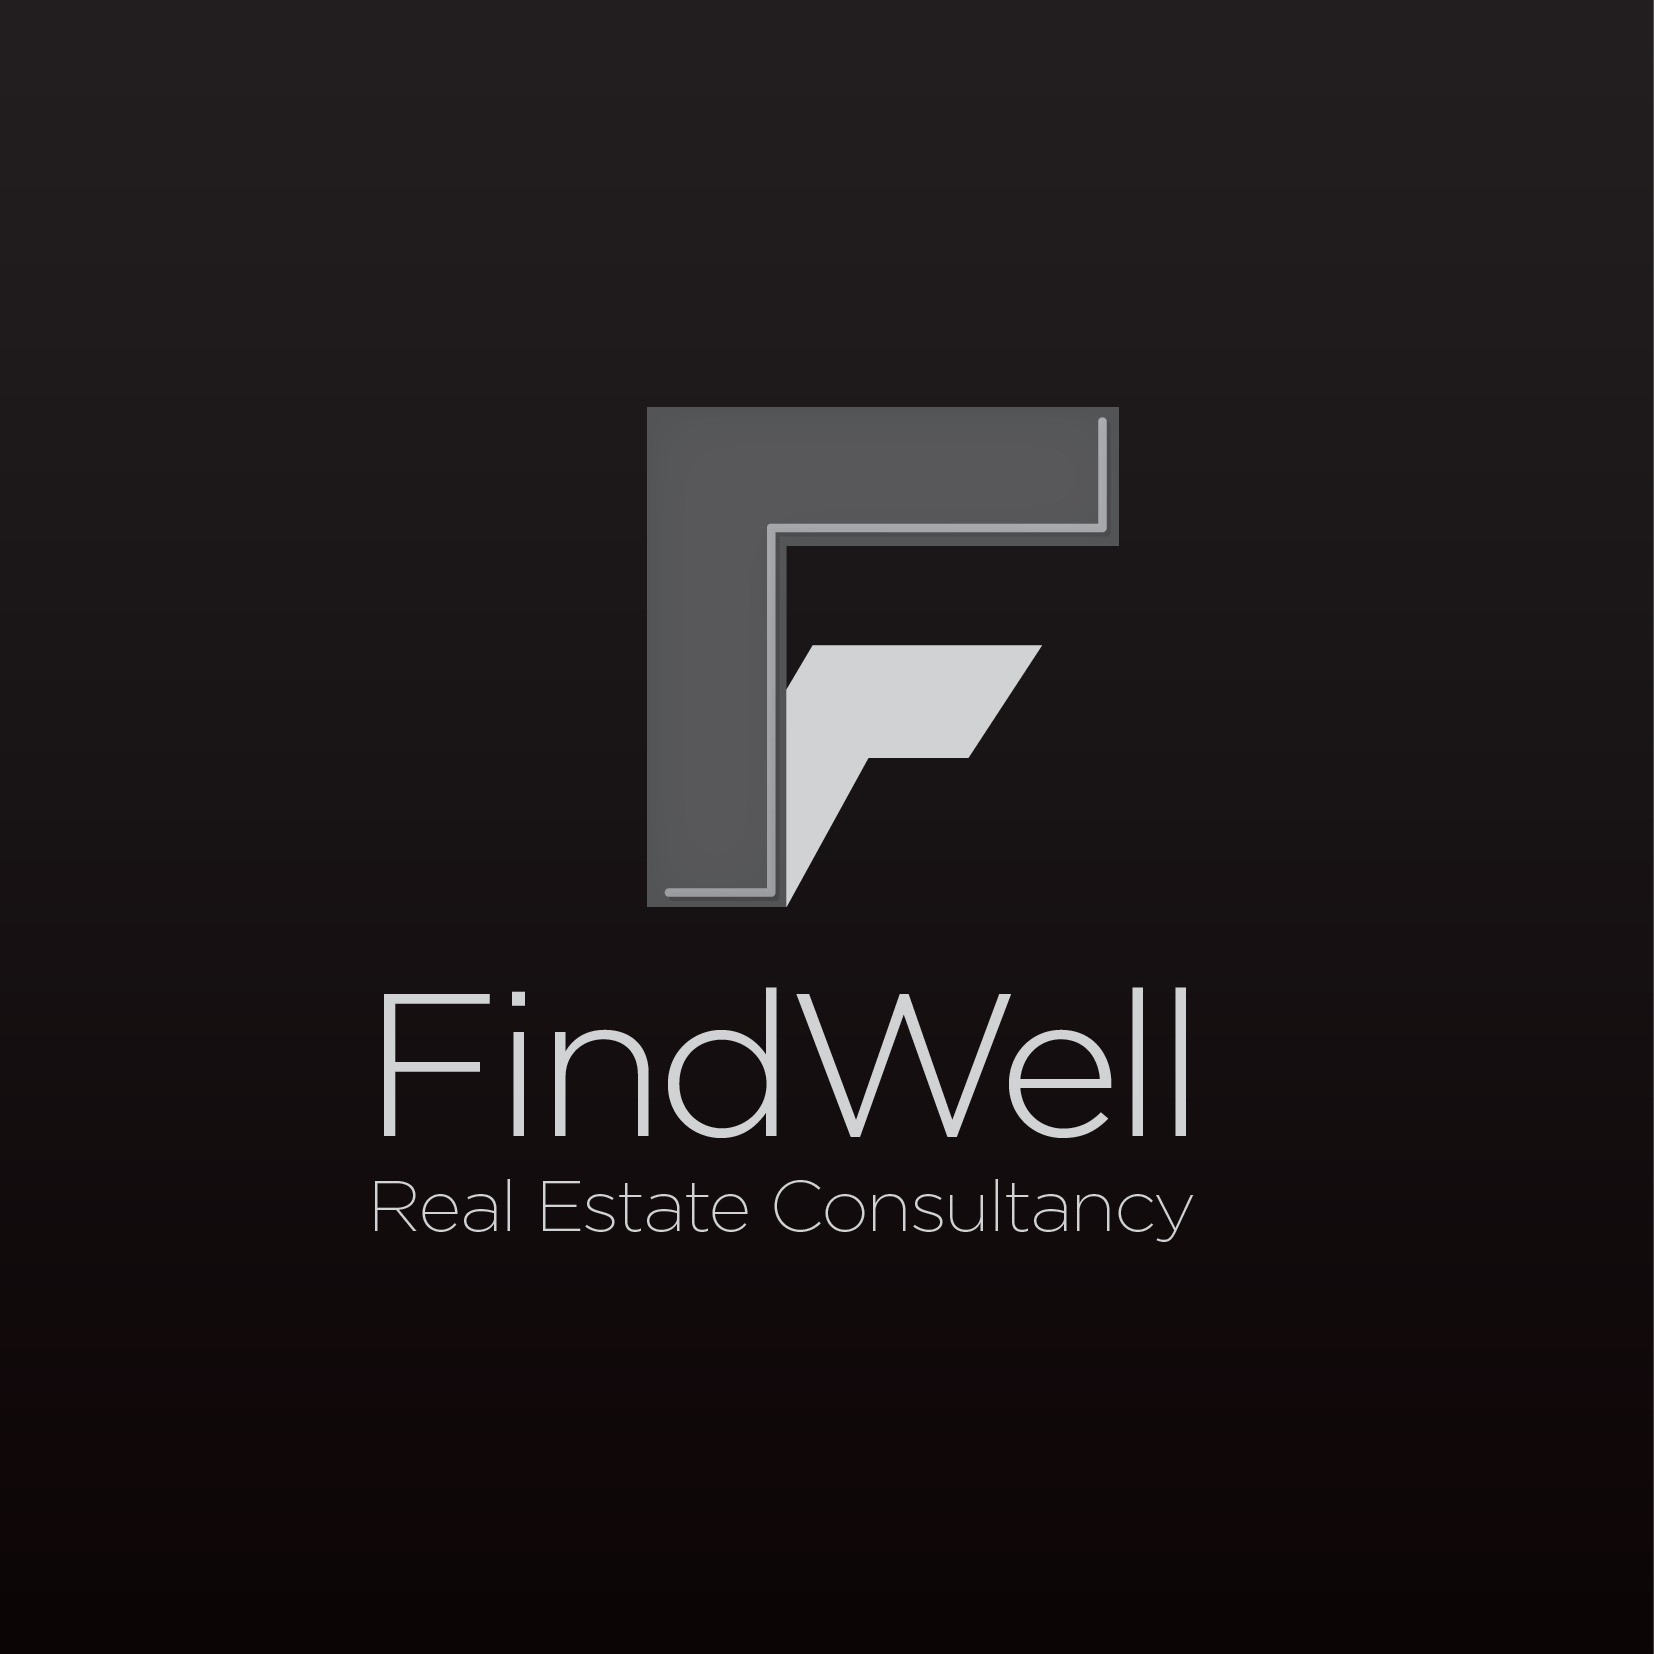 Findwell Real Estate Consultancy's logo